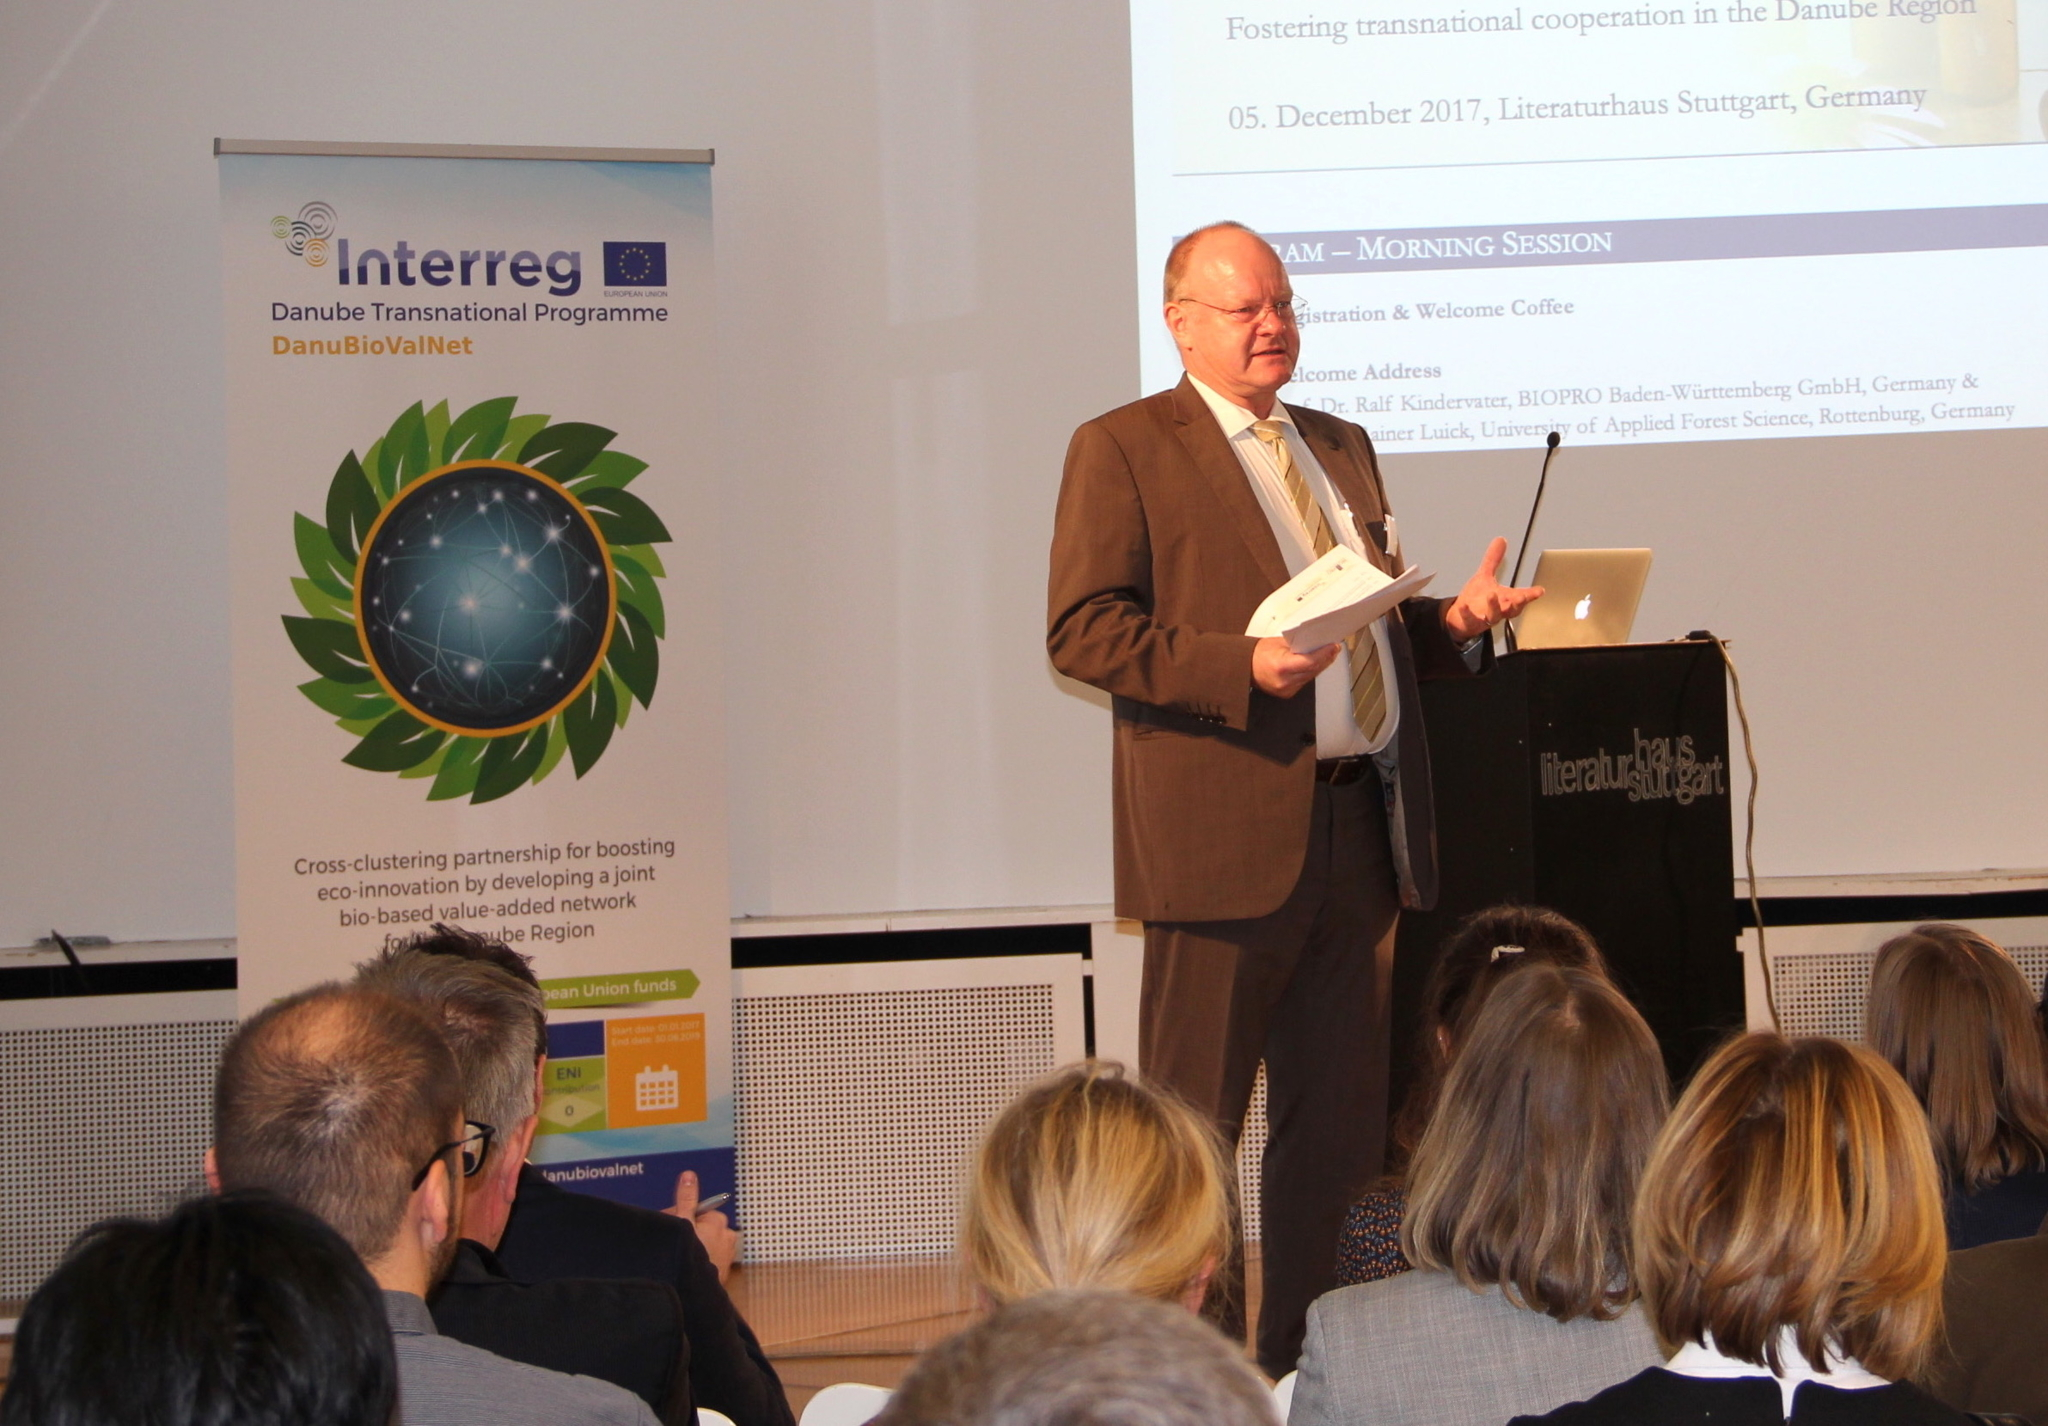 Photo of Prof. Dr. Ralf Kindervater speaking to an audience.